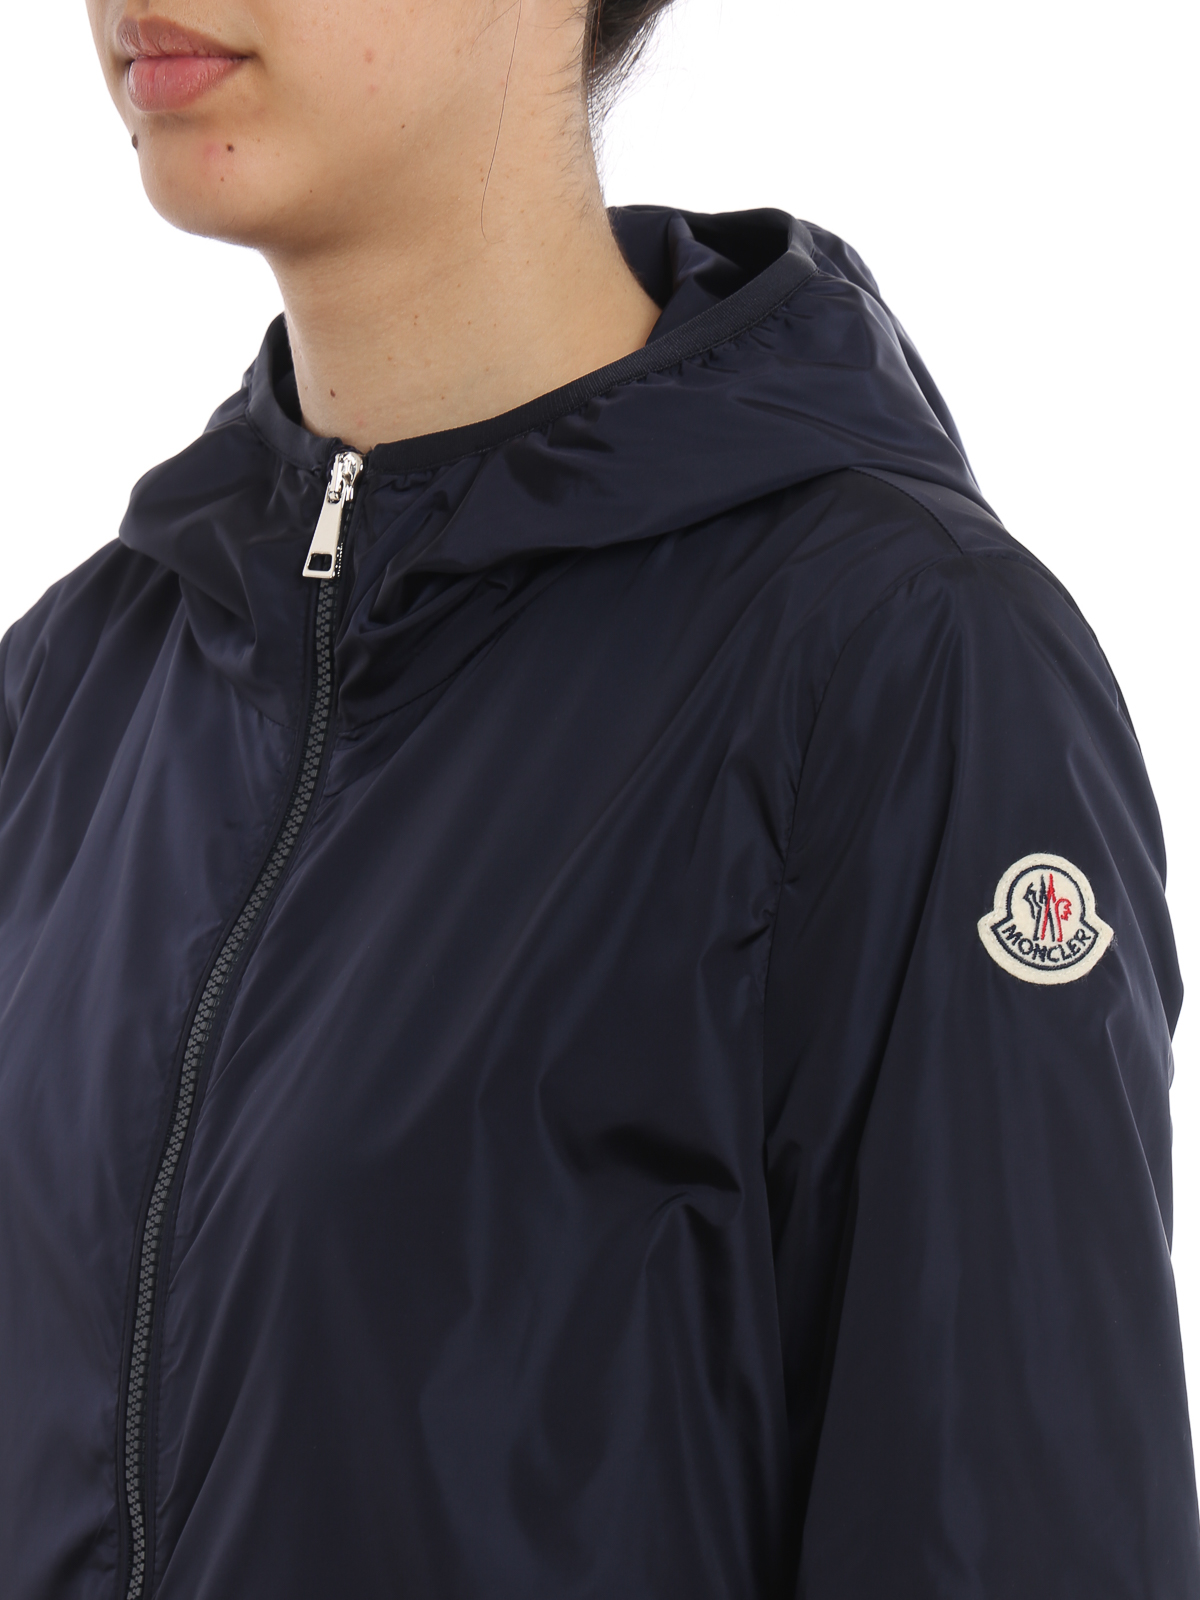 2f1d2c4b8 Moncler - Vive dark blue waterproof jacket - casual jackets ...